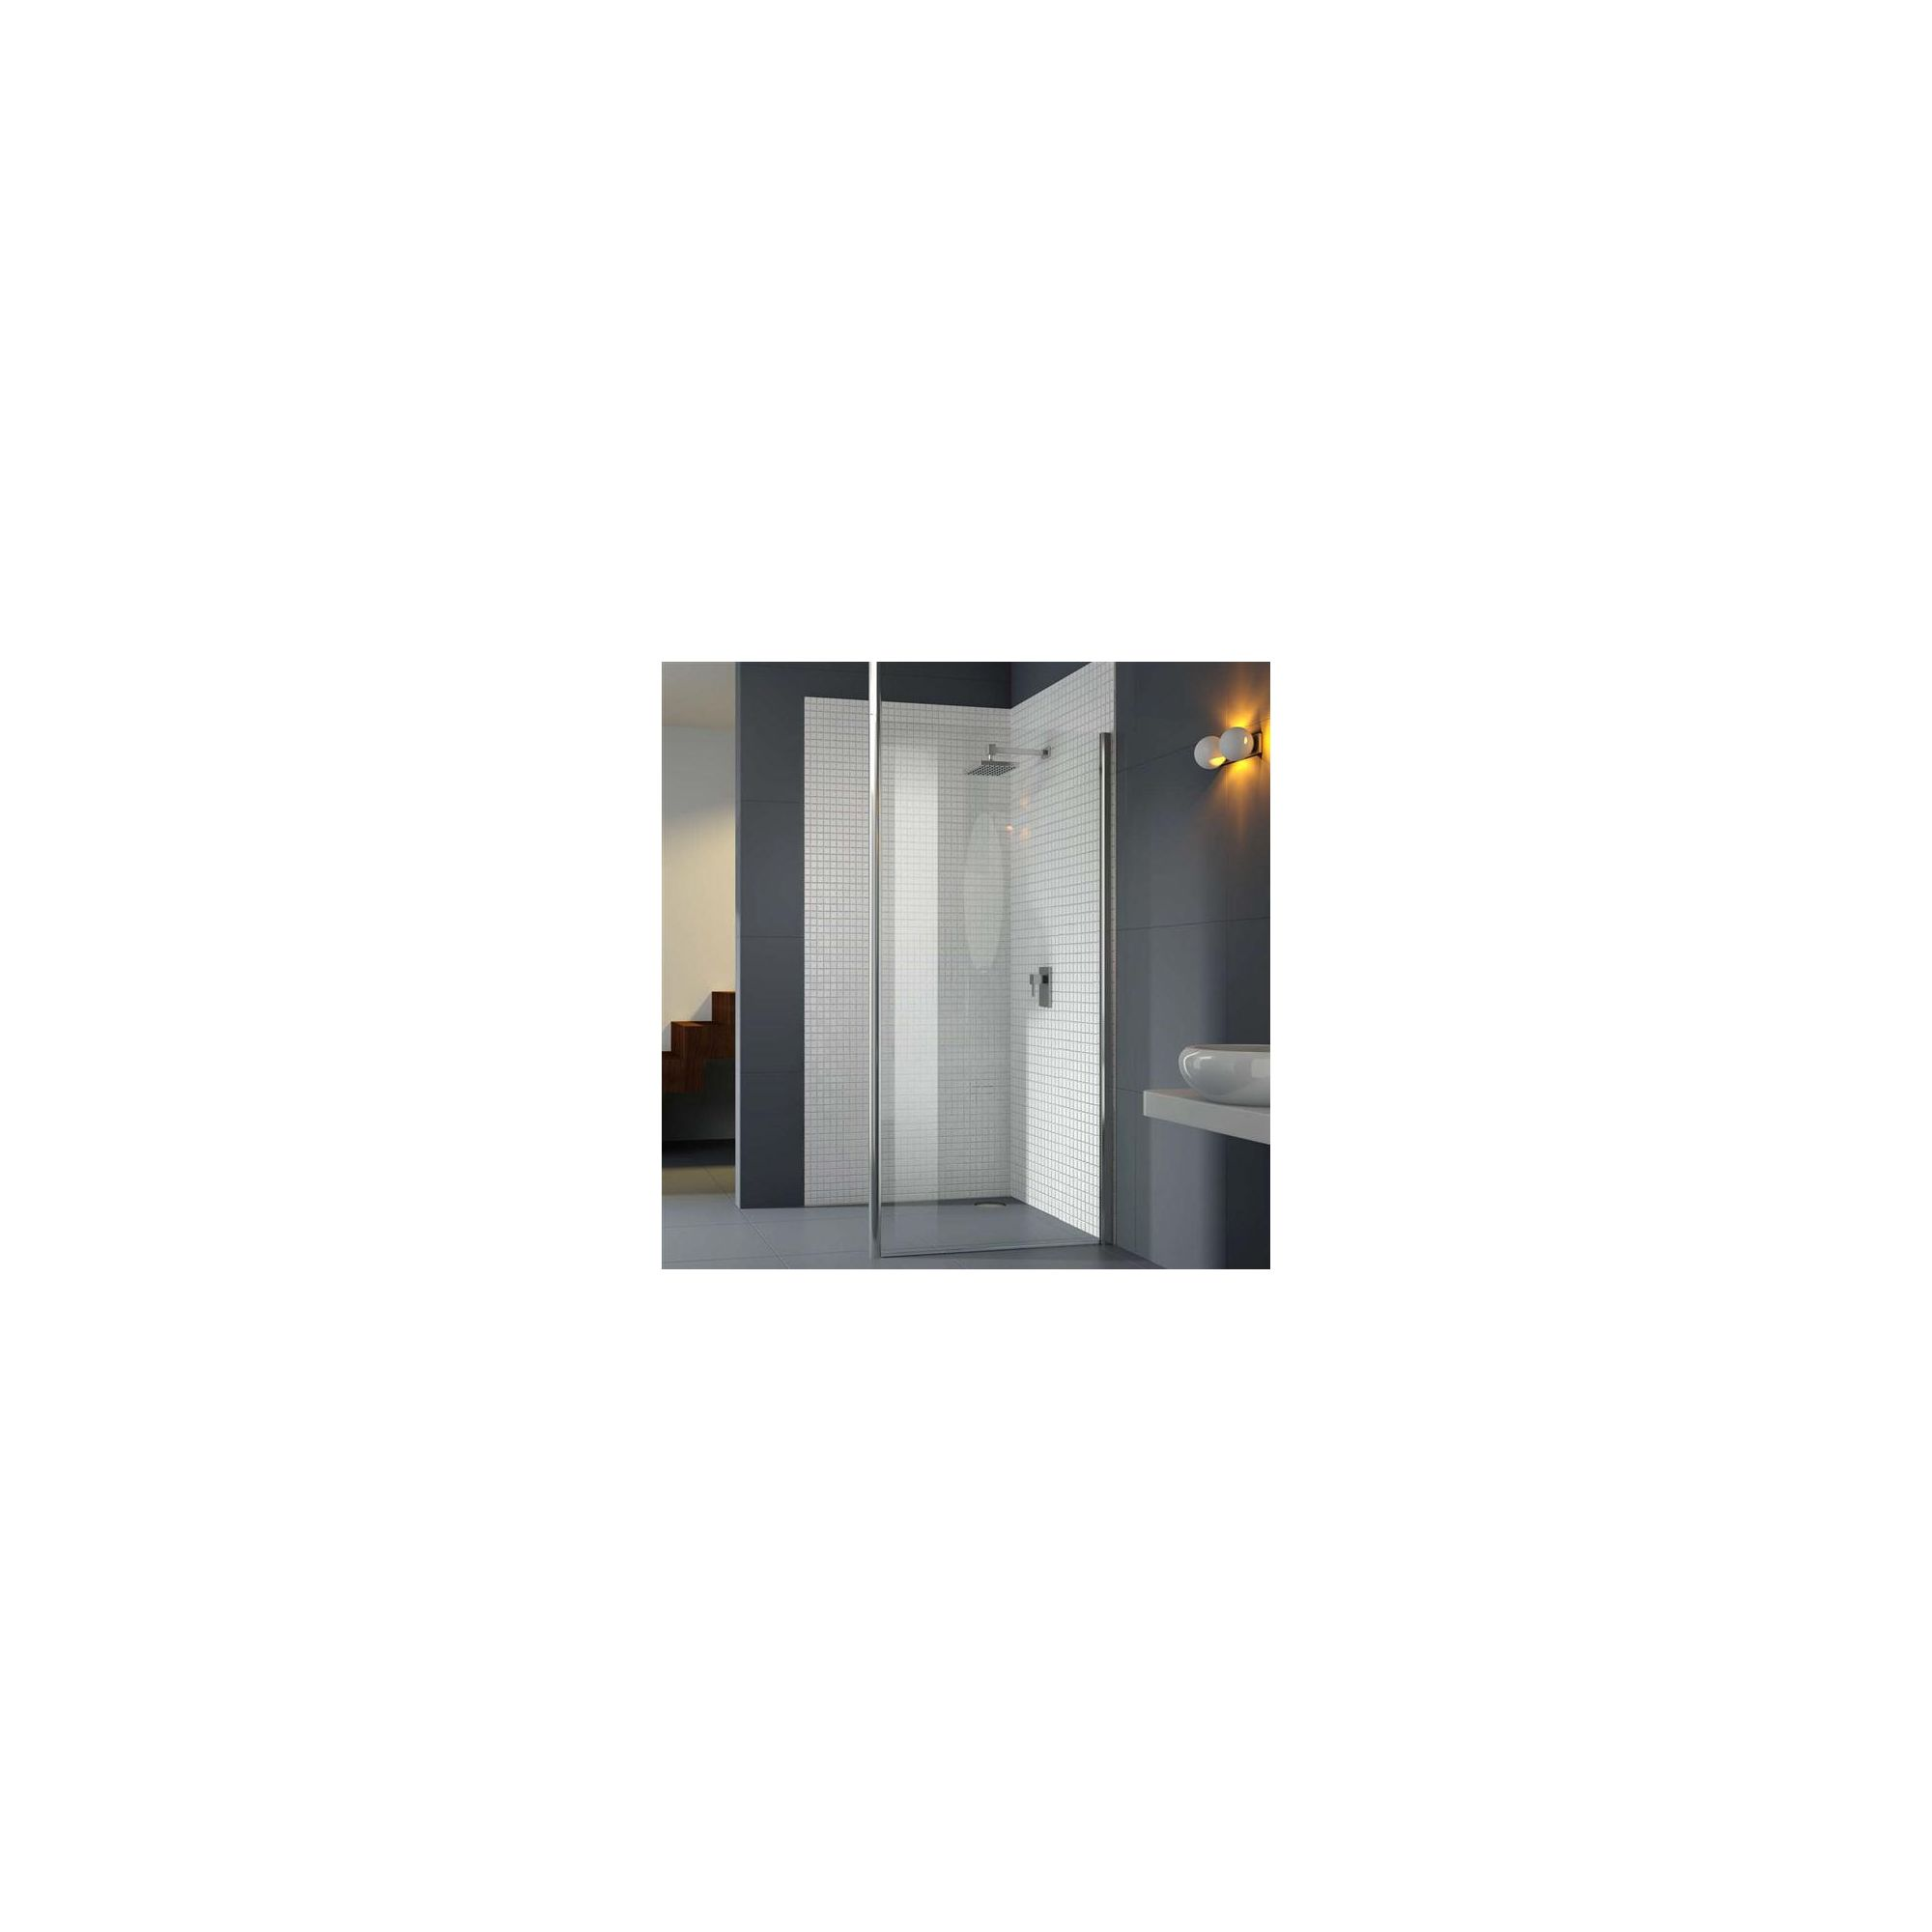 Merlyn Vivid Six Wet Room Shower Enclosure, 1200mm x 900mm, Vertical Support Bar, Low Profile Tray, 6mm Glass at Tesco Direct